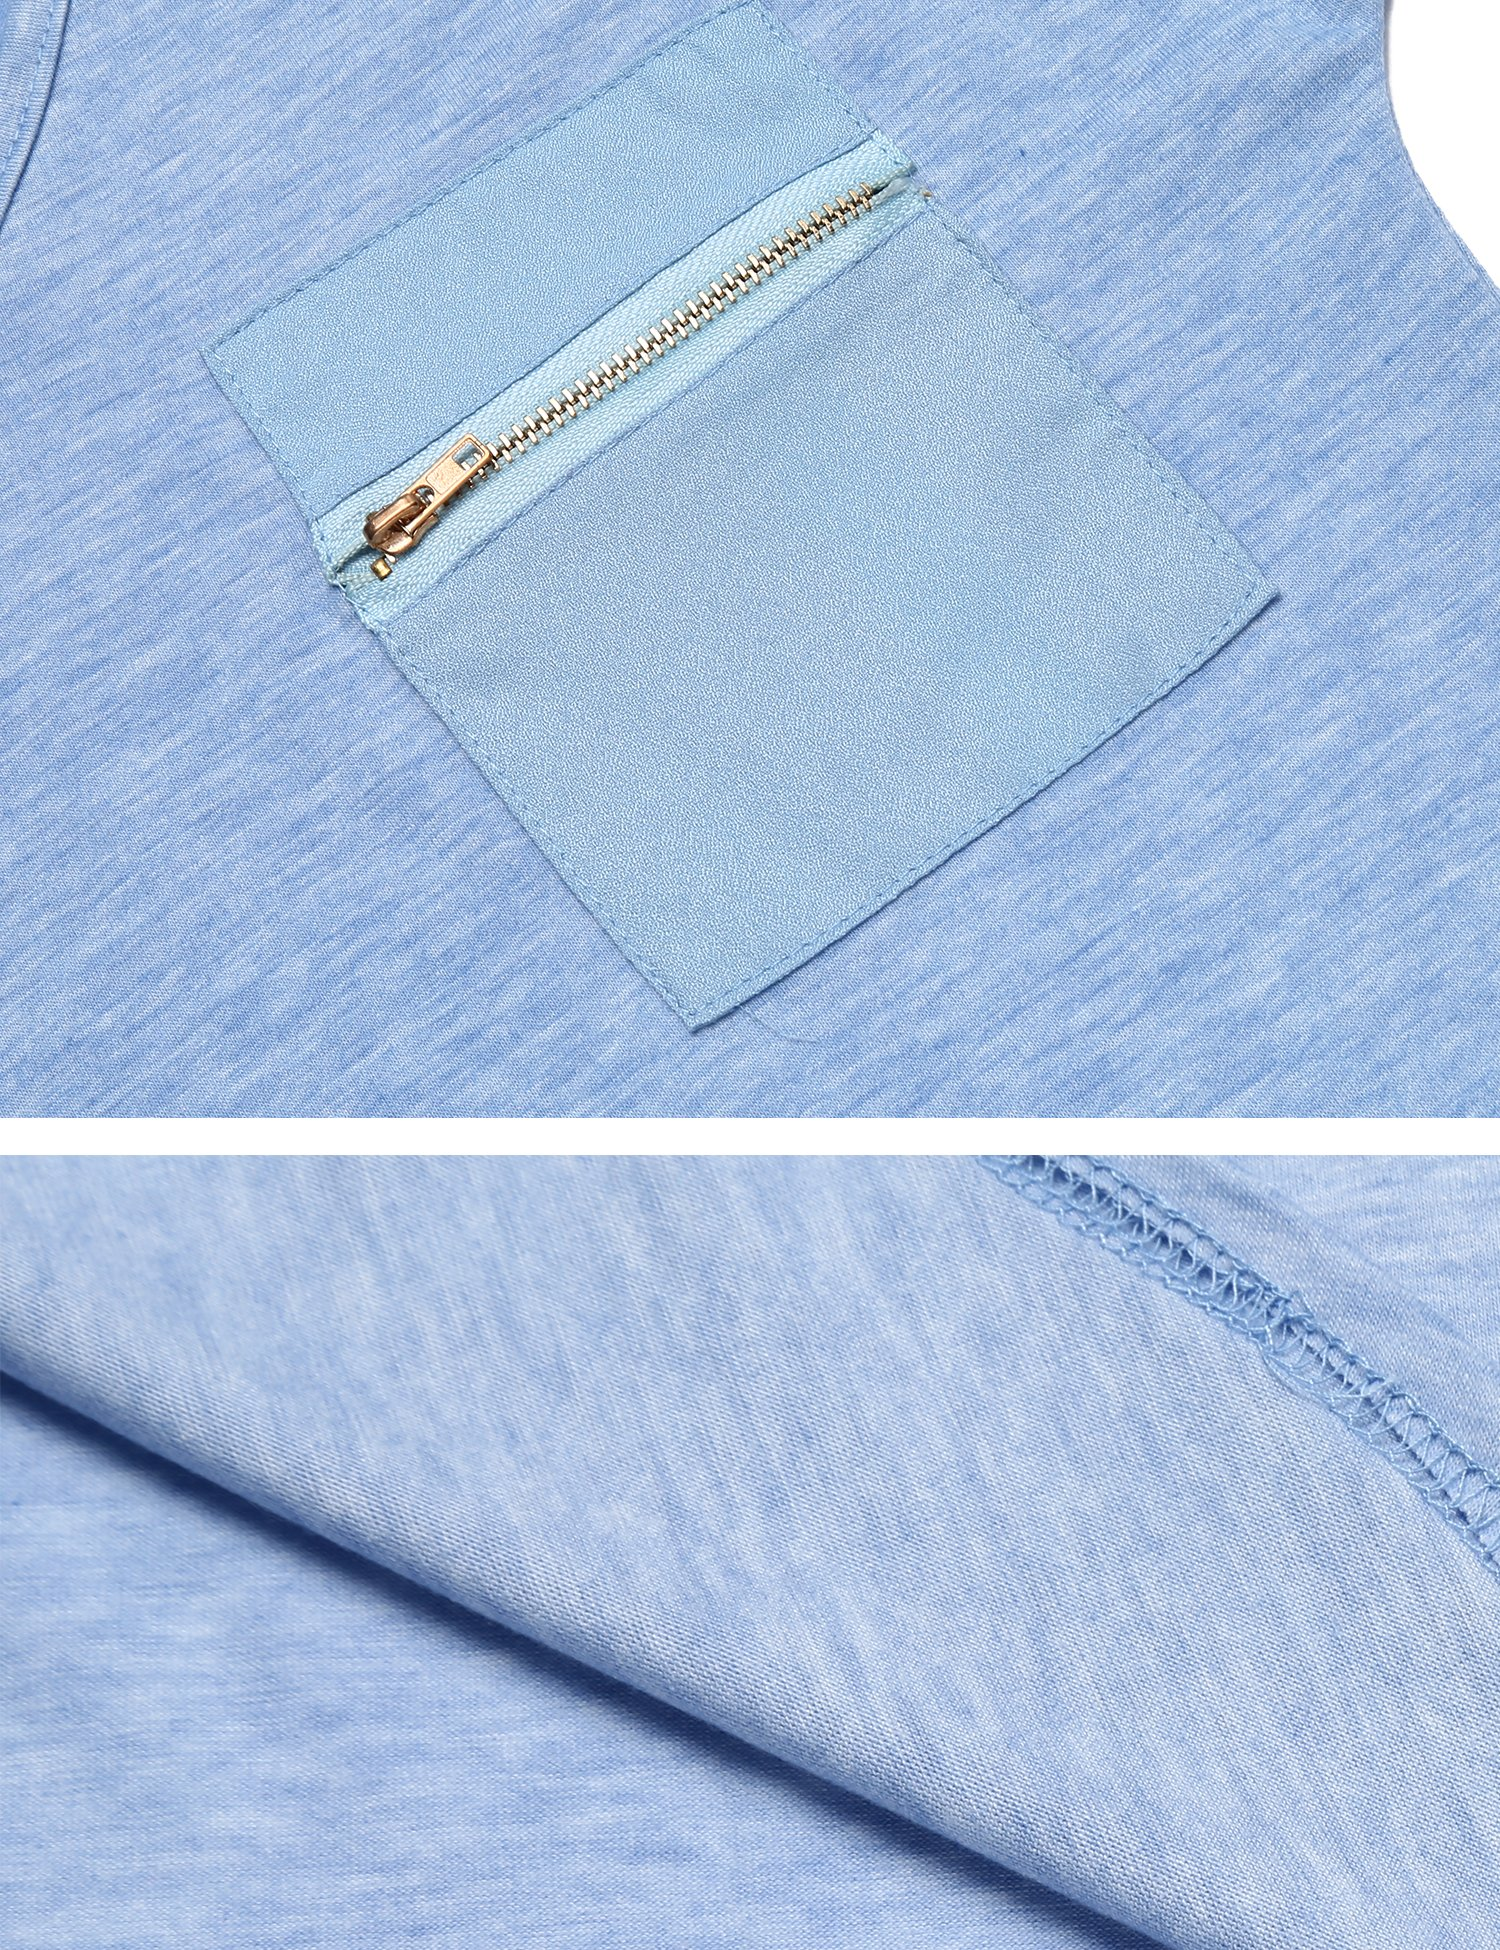 OURS Women's Casual Fashion Simple Comfy Knit Business Work T Shirt(Blue, S) by OURS (Image #7)